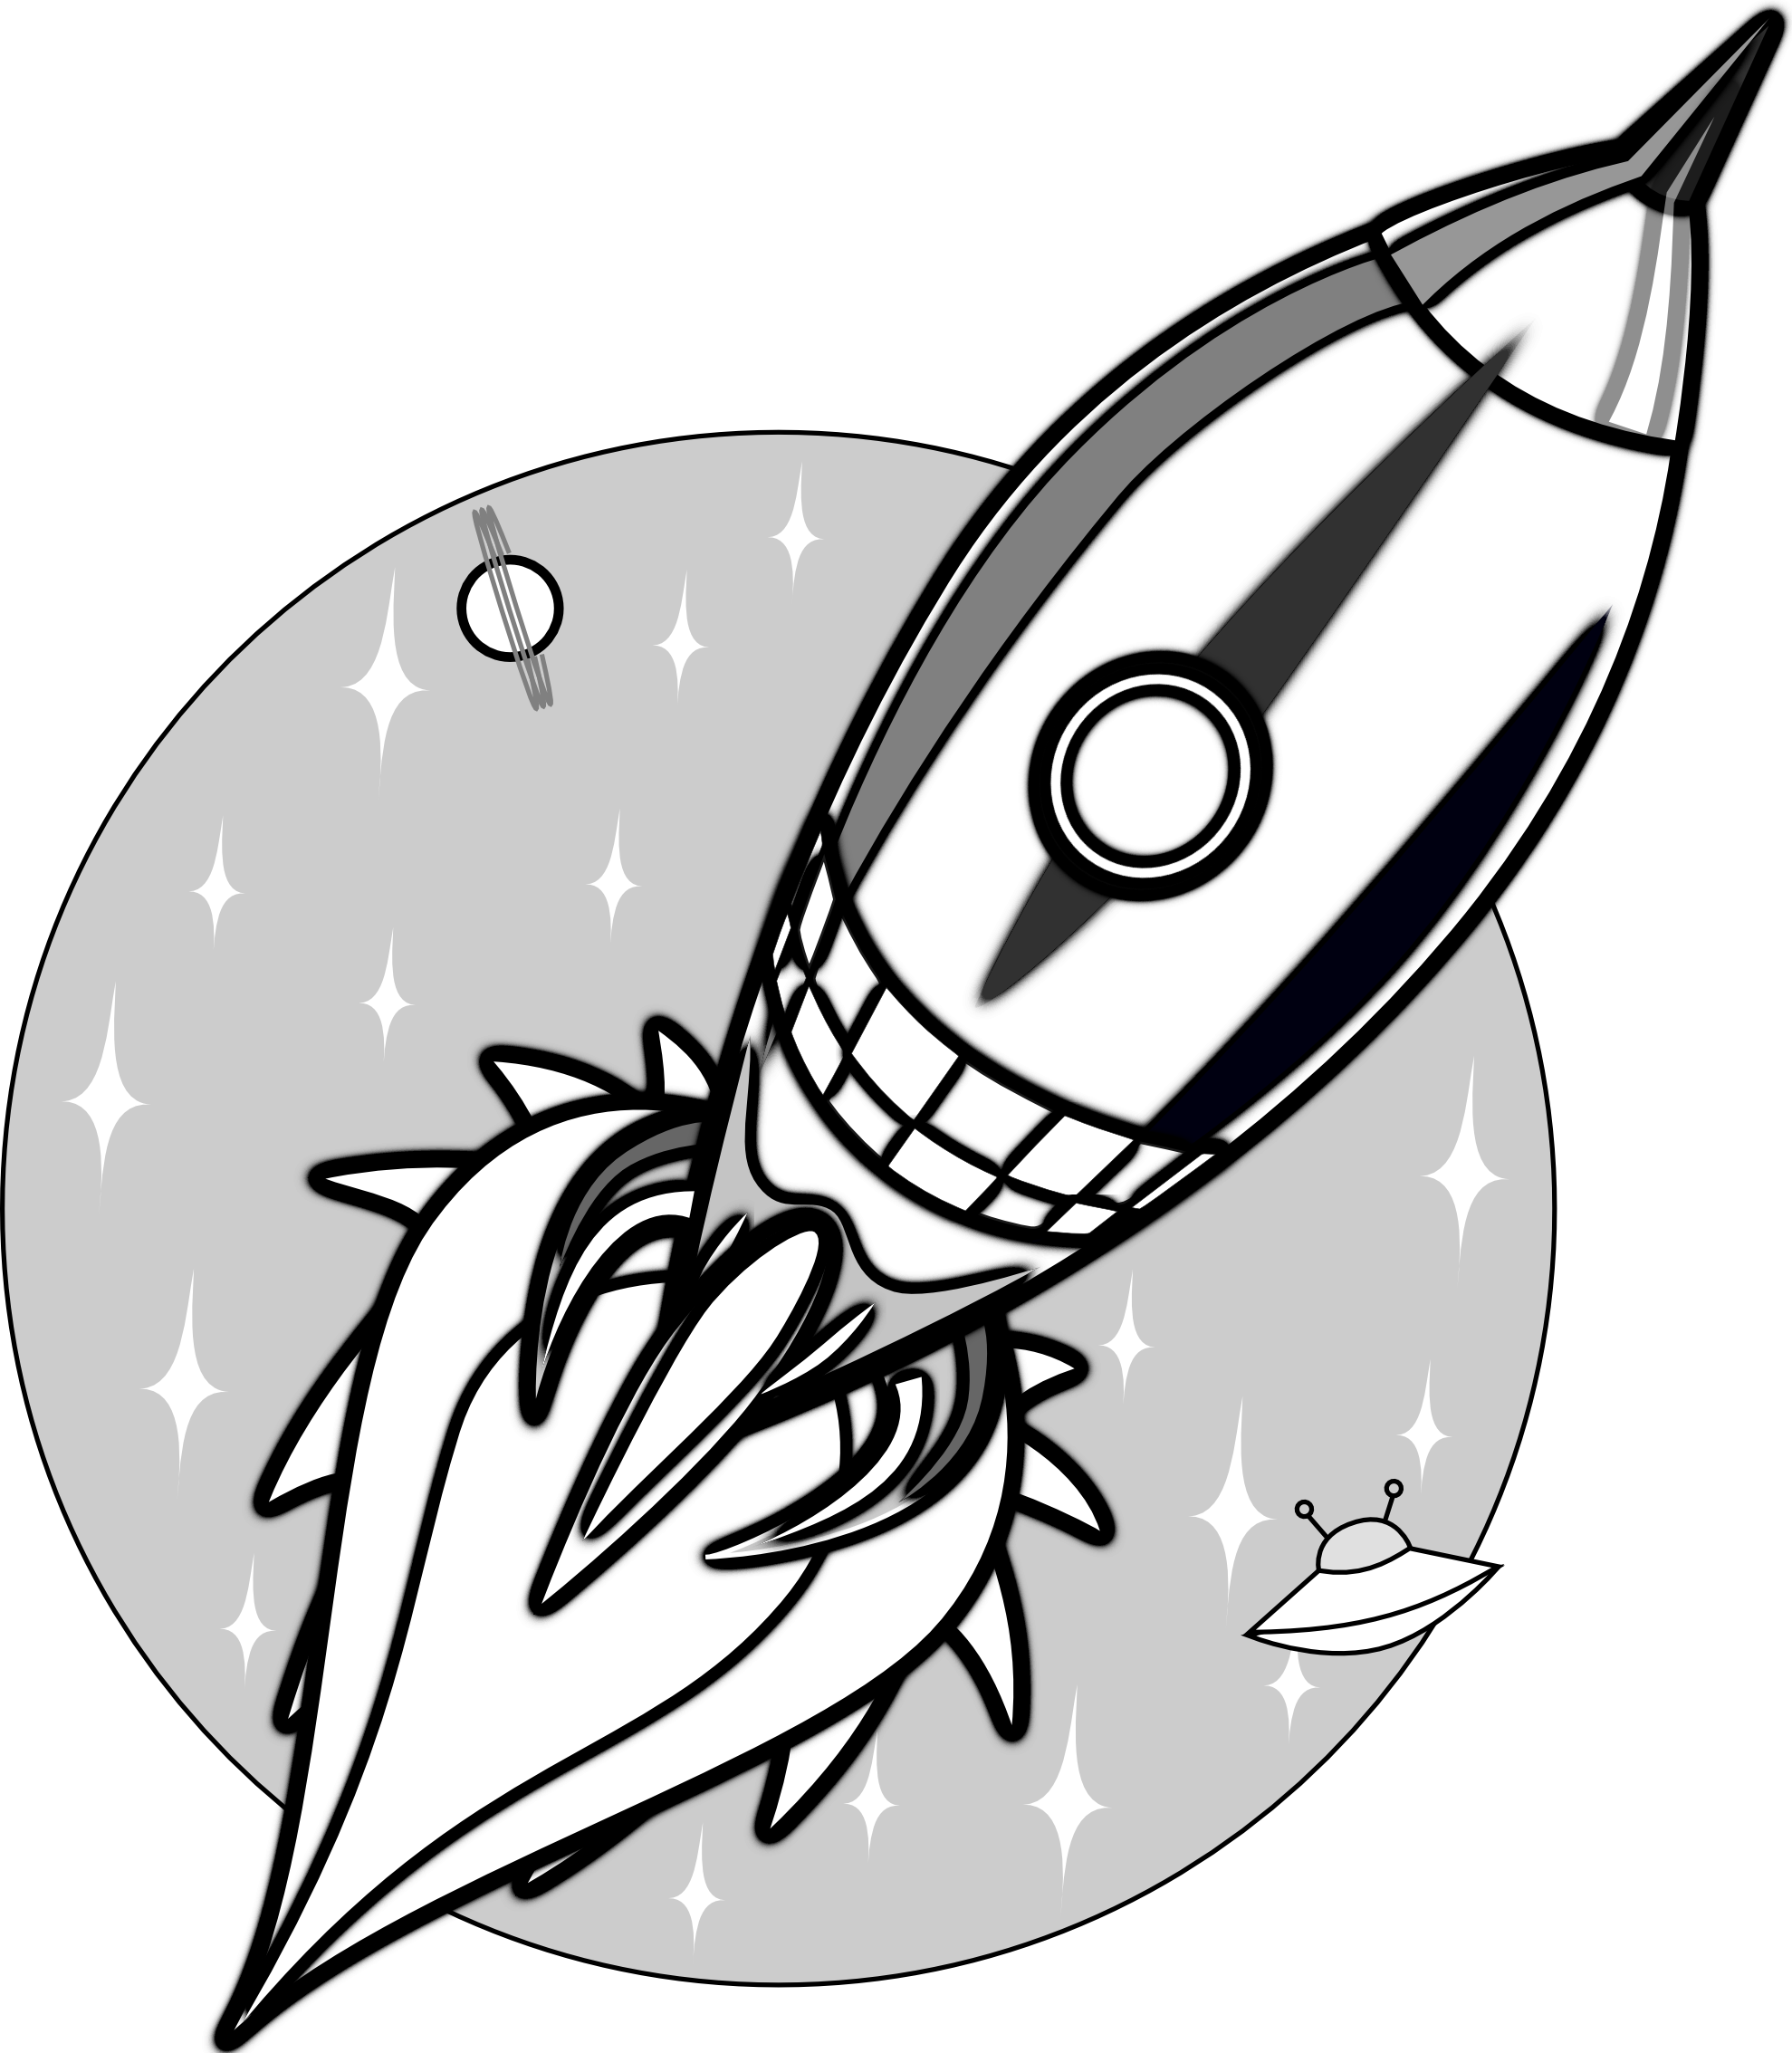 spacecraft drawing ufo